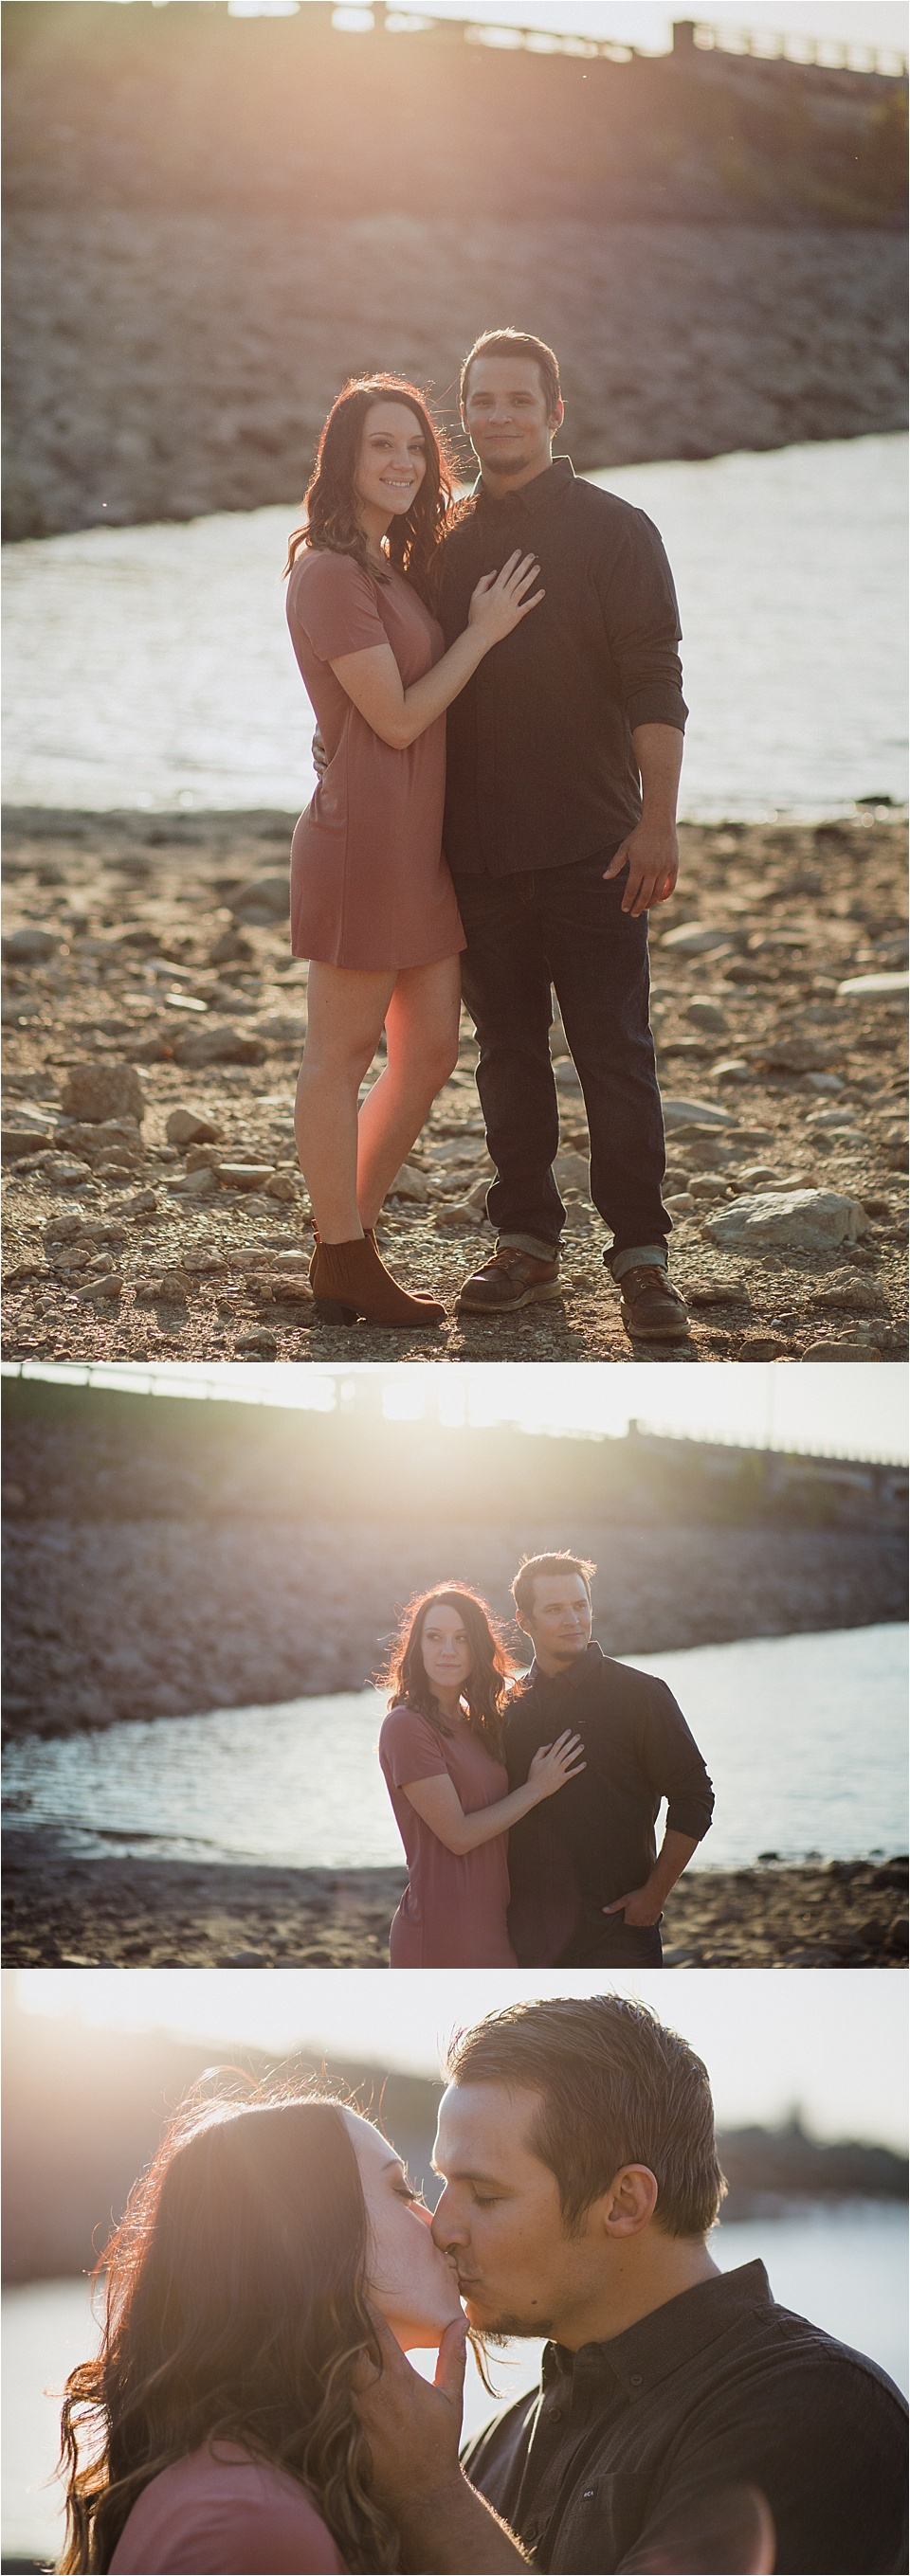 Columbus, Ohio wedding photographer. Sunset engagement session at the Hoover Dam